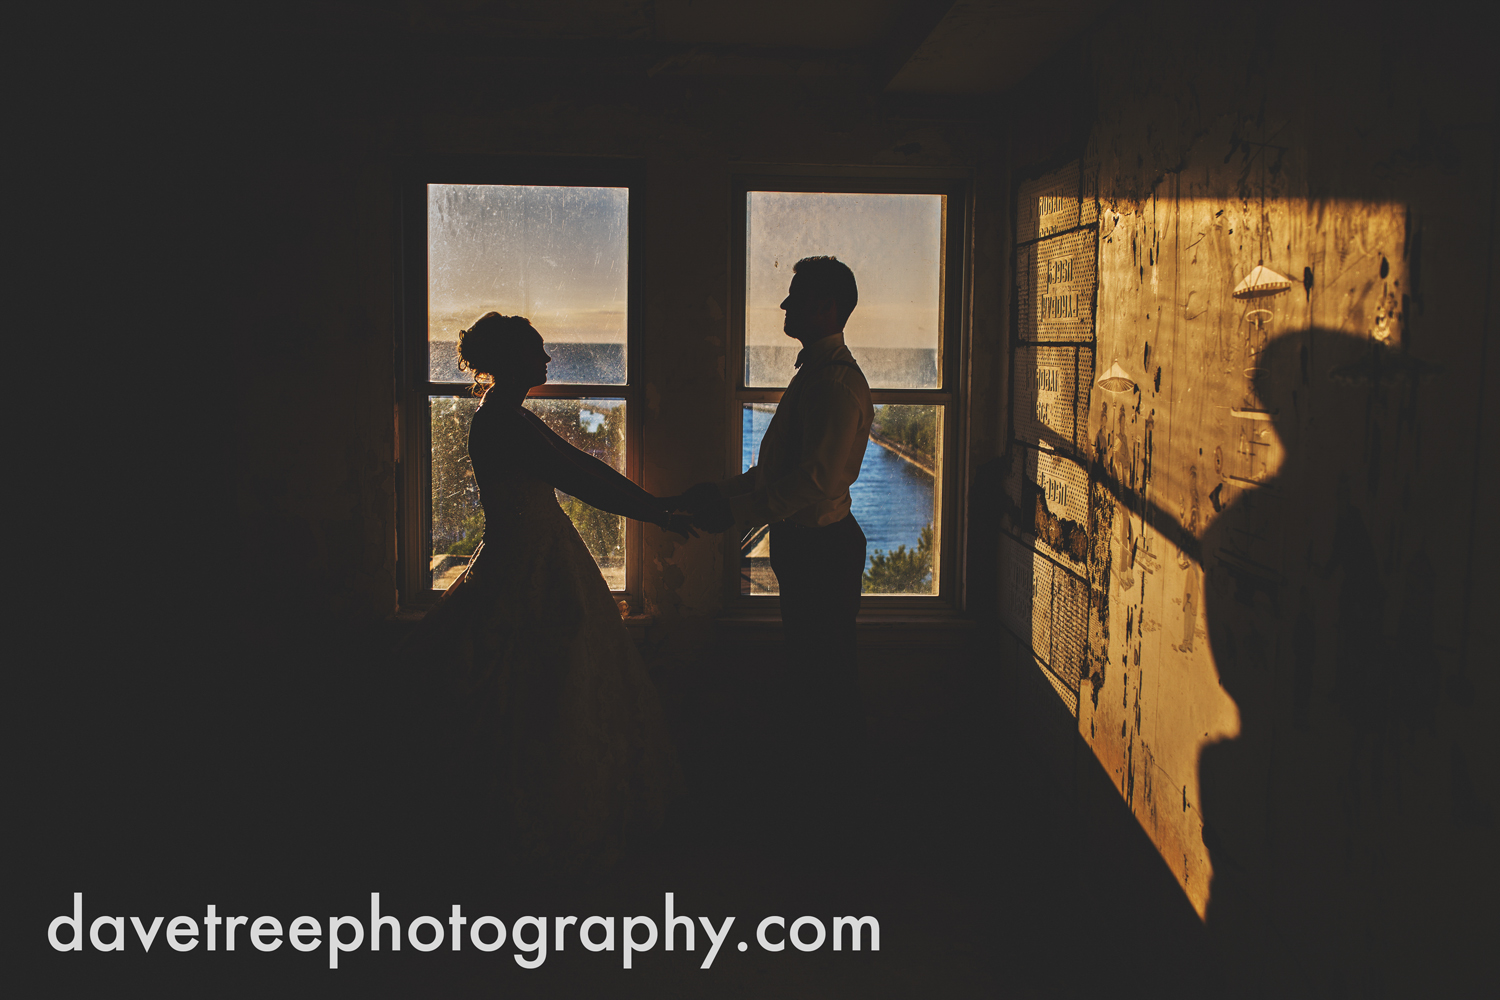 veranda_wedding_photographer_st_joseph_wedding_36.jpg